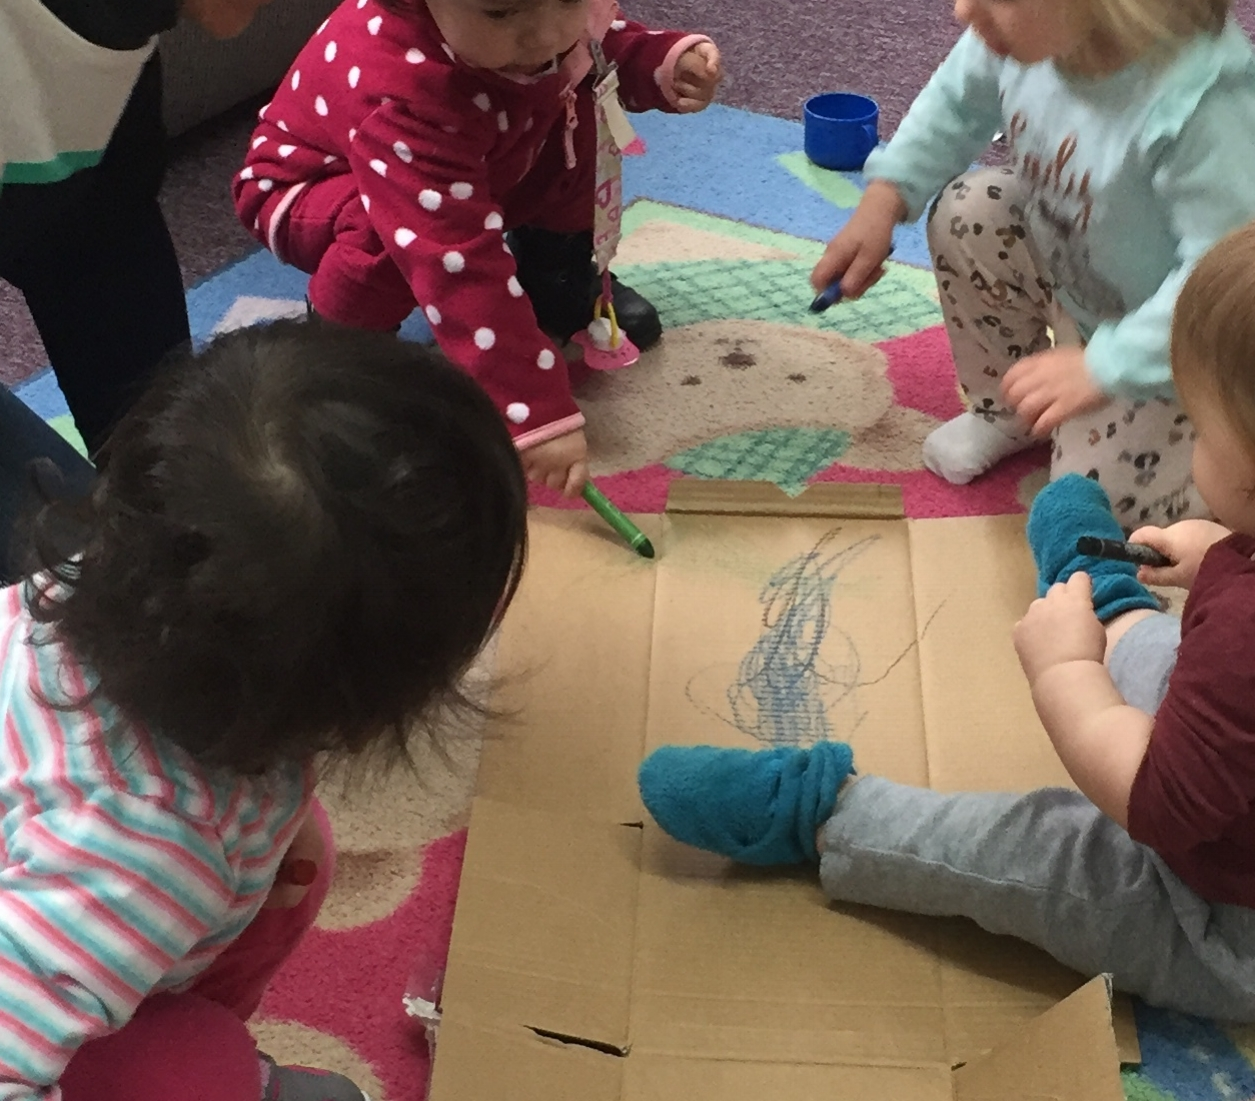 Toddlers drawing a picture.